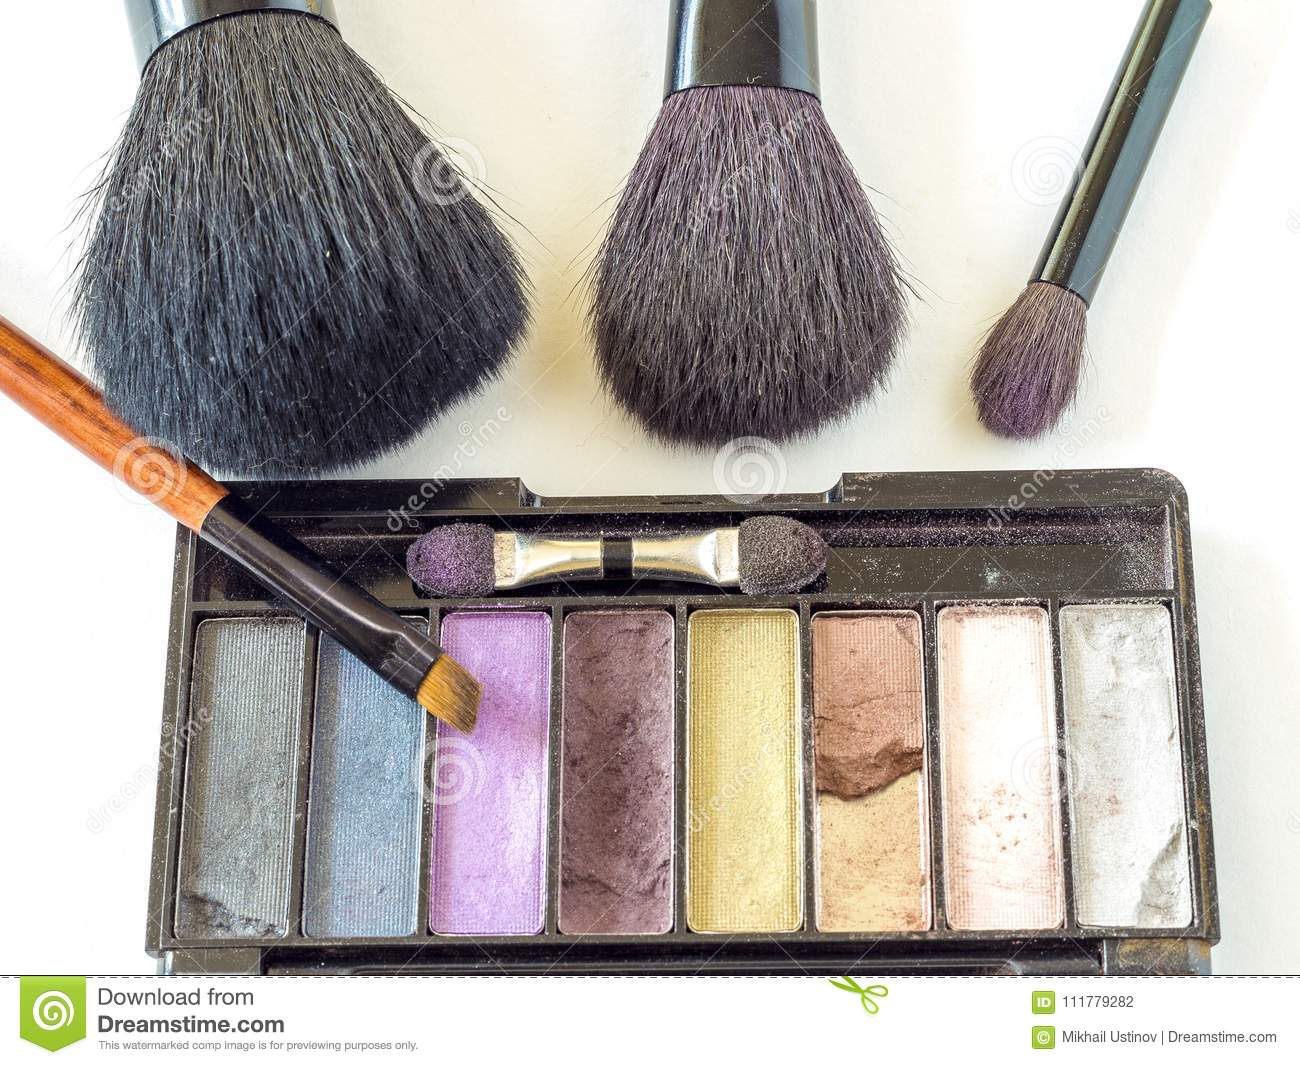 A set of brushes for make-up